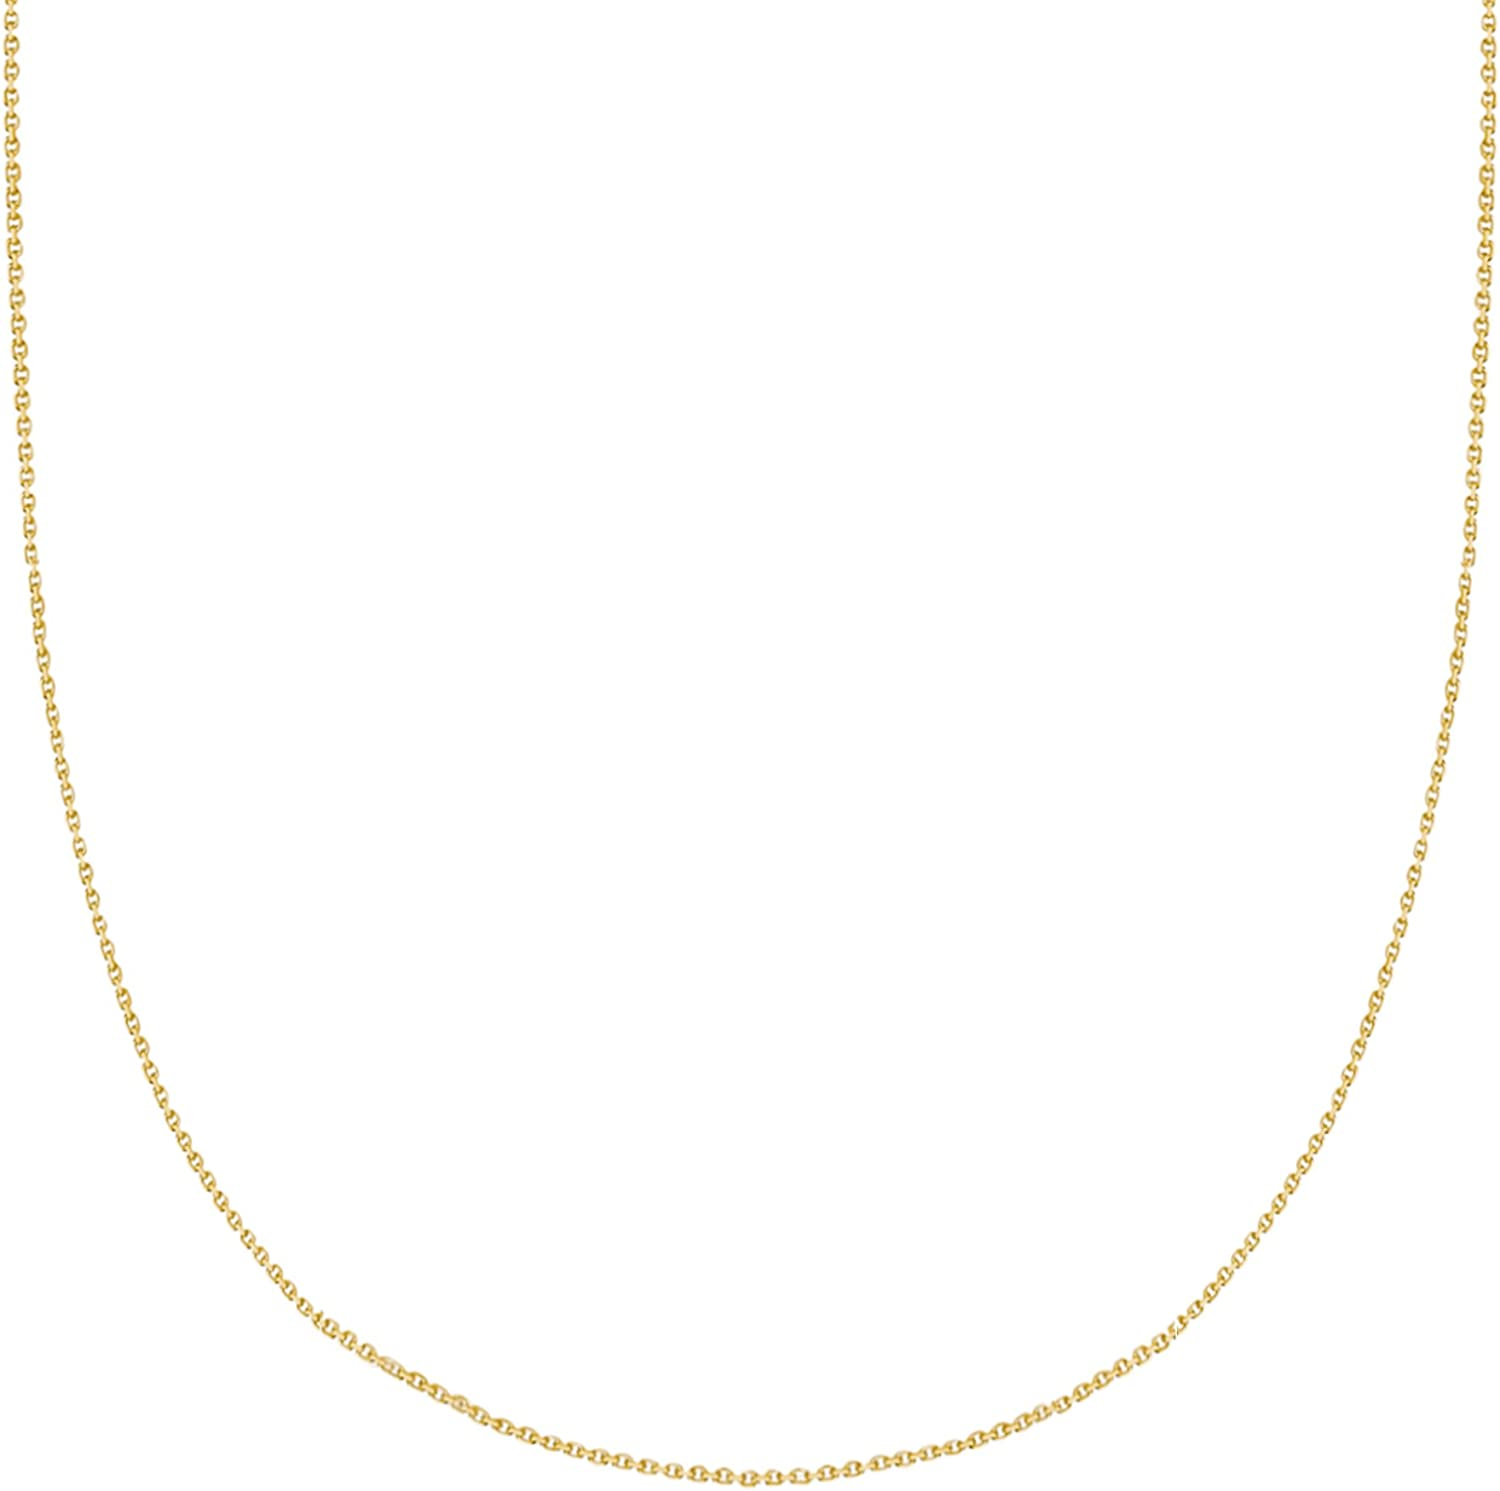 Ritastephens 14k Solid Seattle Mall Gold Cable Link Chain Mm 0.9 13 Necklace Max 83% OFF